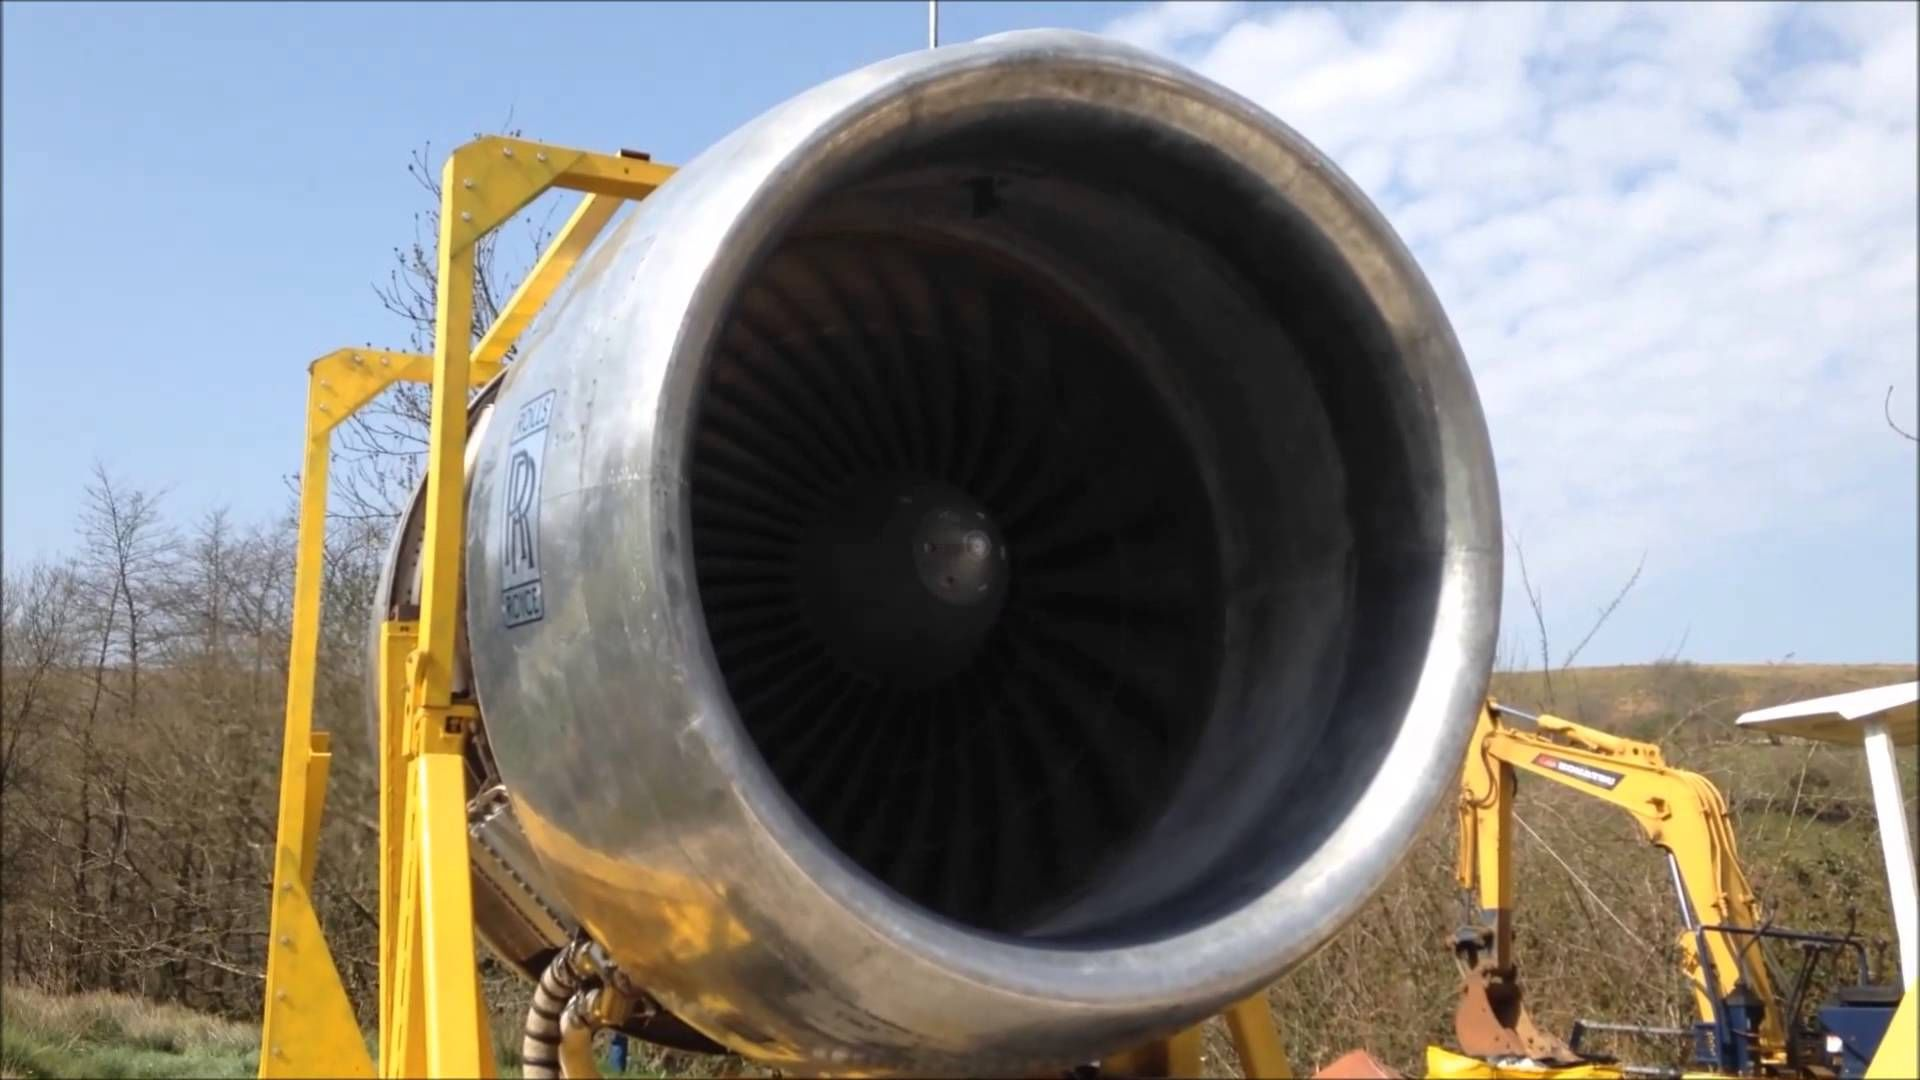 Rolls Royce RB211 Back Yard 747 Jet Engine Run Close Up and